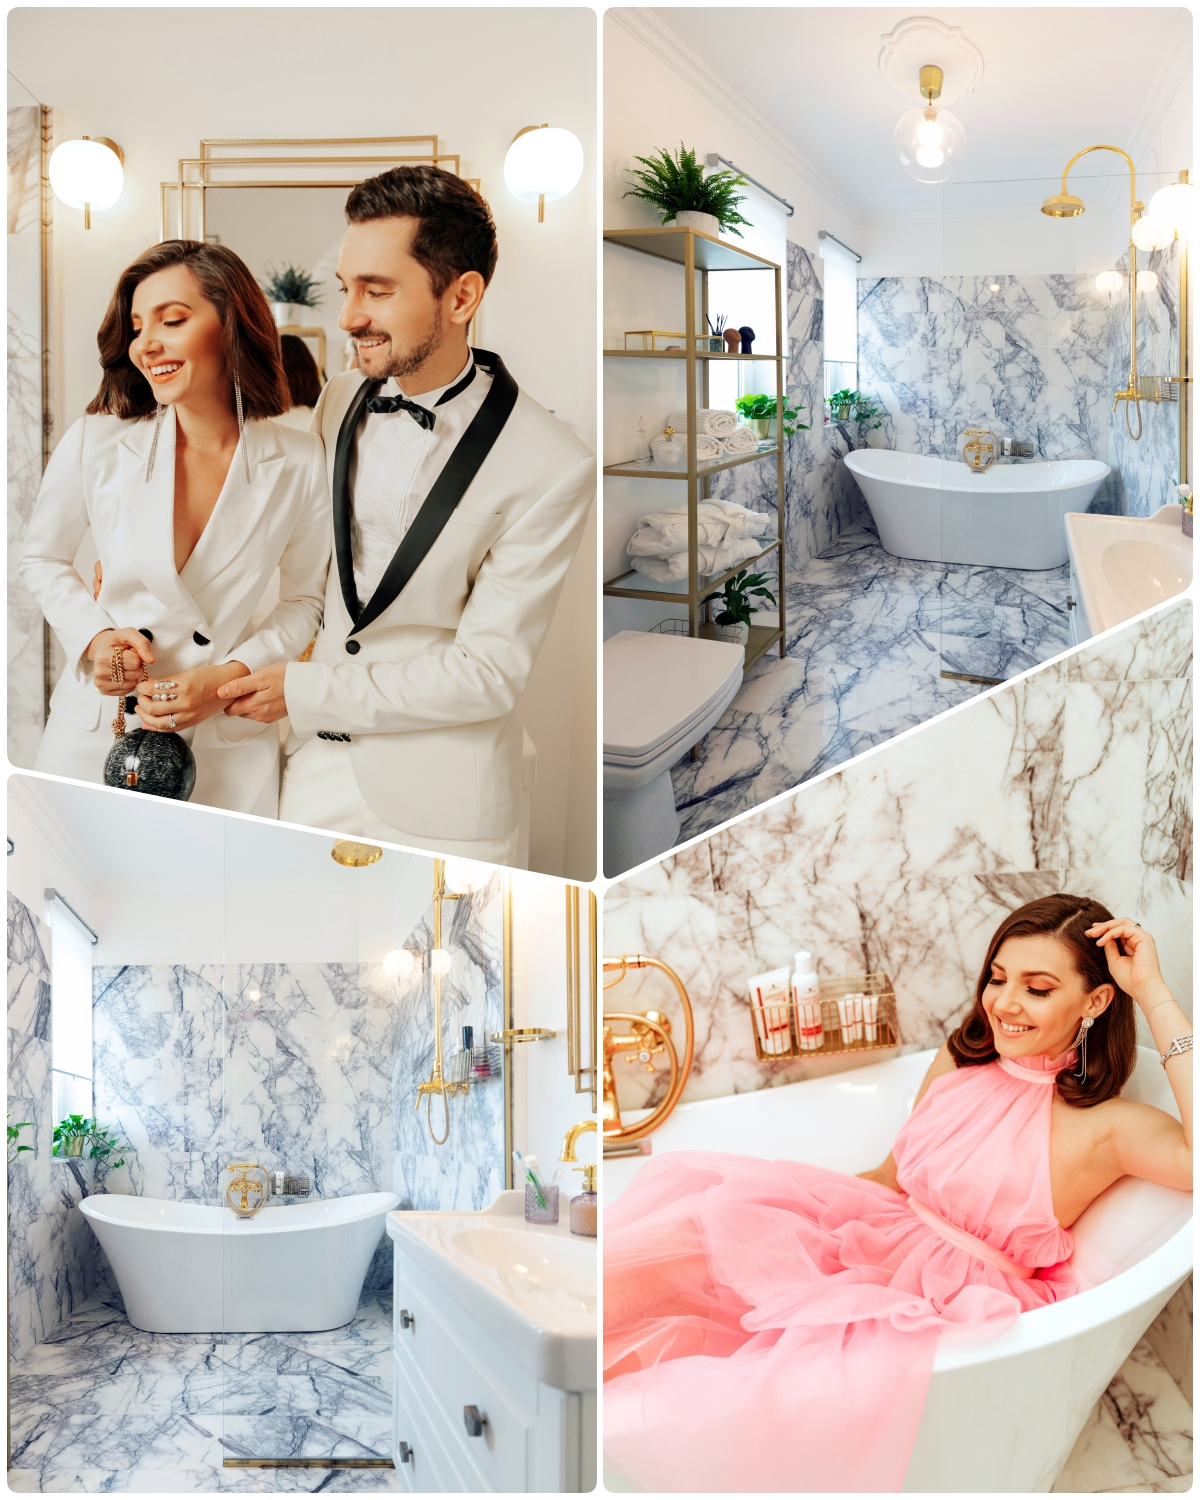 larisa costea, larisa costea blog, casa larisei costea, home tour, our apartment, 2 bedroom apartment, loft, penthouse, turul apartamentului, turul casei, livingroom, bedroom, bathroom, kitcken, ikdea, vivre, etsy, home deco, home style, modern apartment, elegant, glam, apartment, bucharest, mavis, mavis.ro, sofa, bucatarie, dormitor, sufragerie, canapea catifea, canapea navy, nacy sofa, zara carpet, the home, grey kitchen, plants, plant pot, spring set-up, pinterest home, printerest home deco